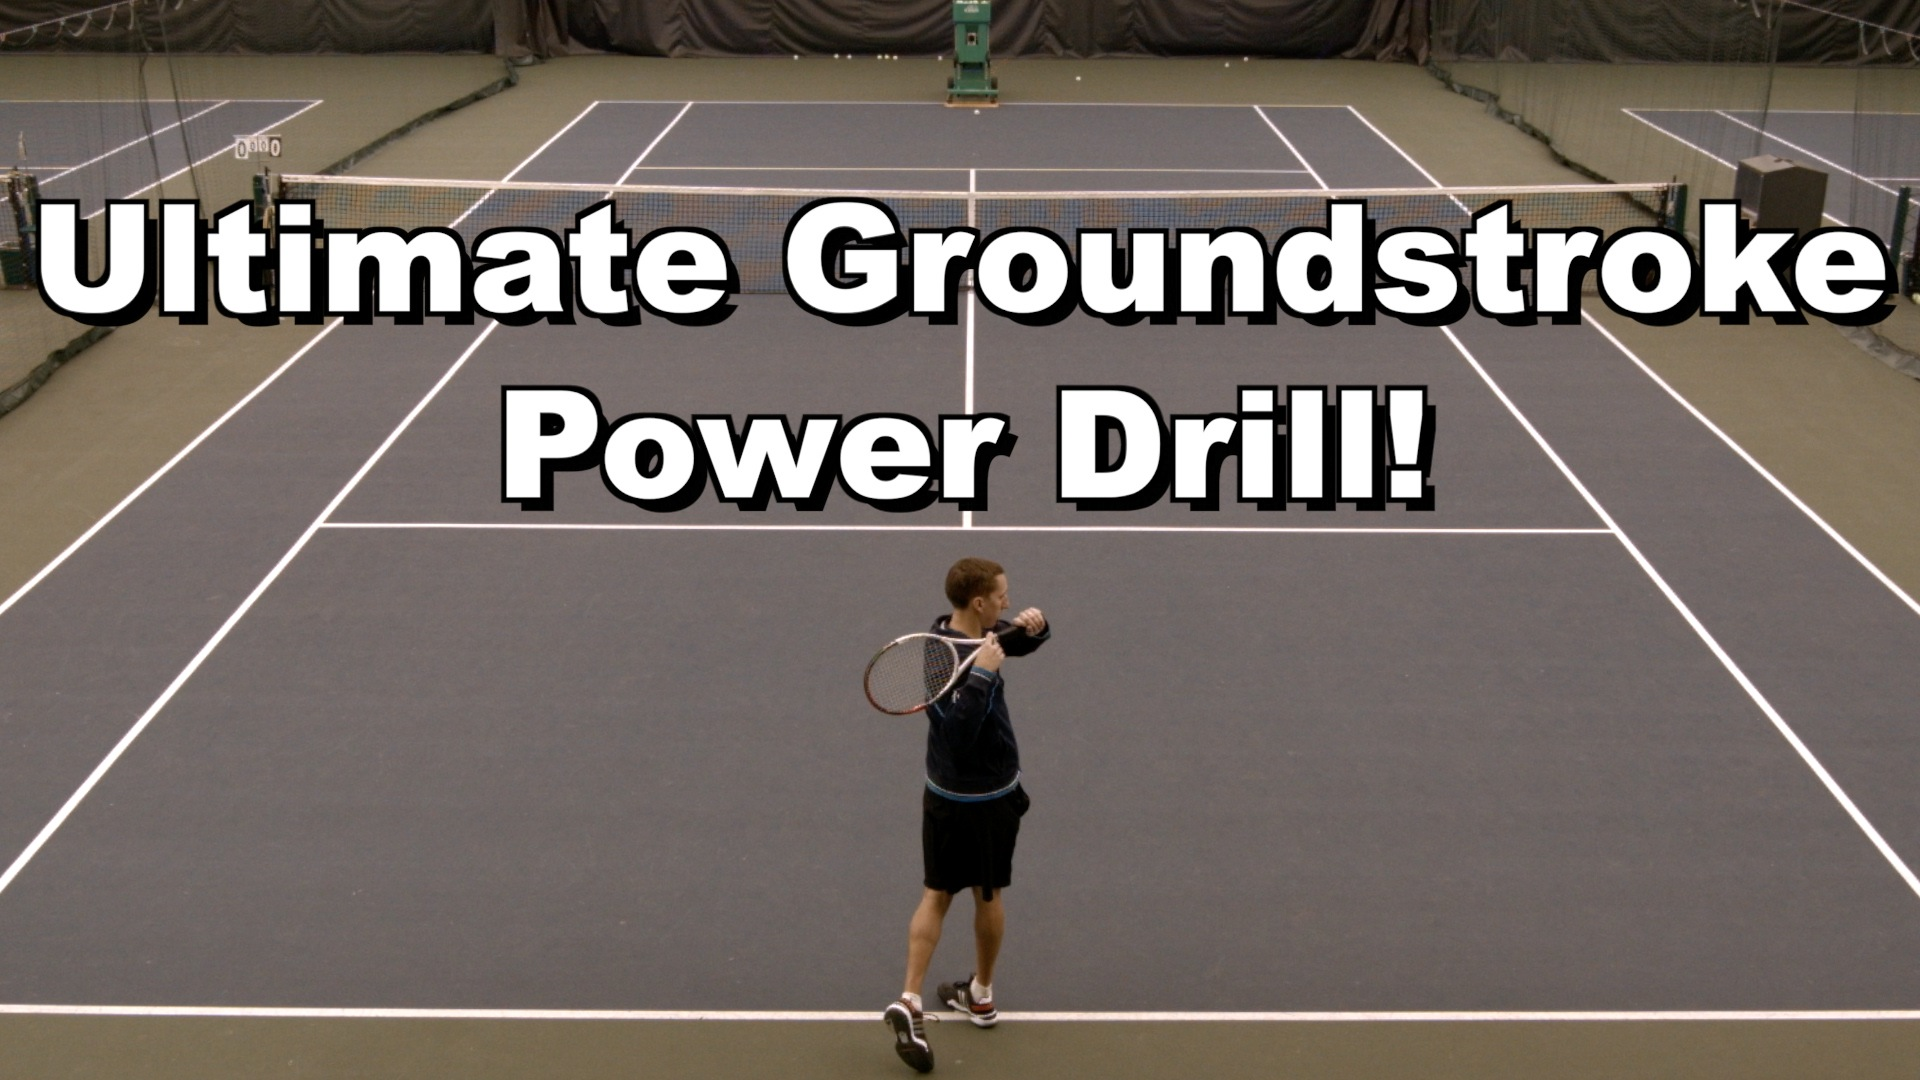 comparison of forehand groundstrokes • this grip calls for a definite change between forehand and backhand positions  for exaggerated topspin and groundstrokes where contact is  (compare bending .